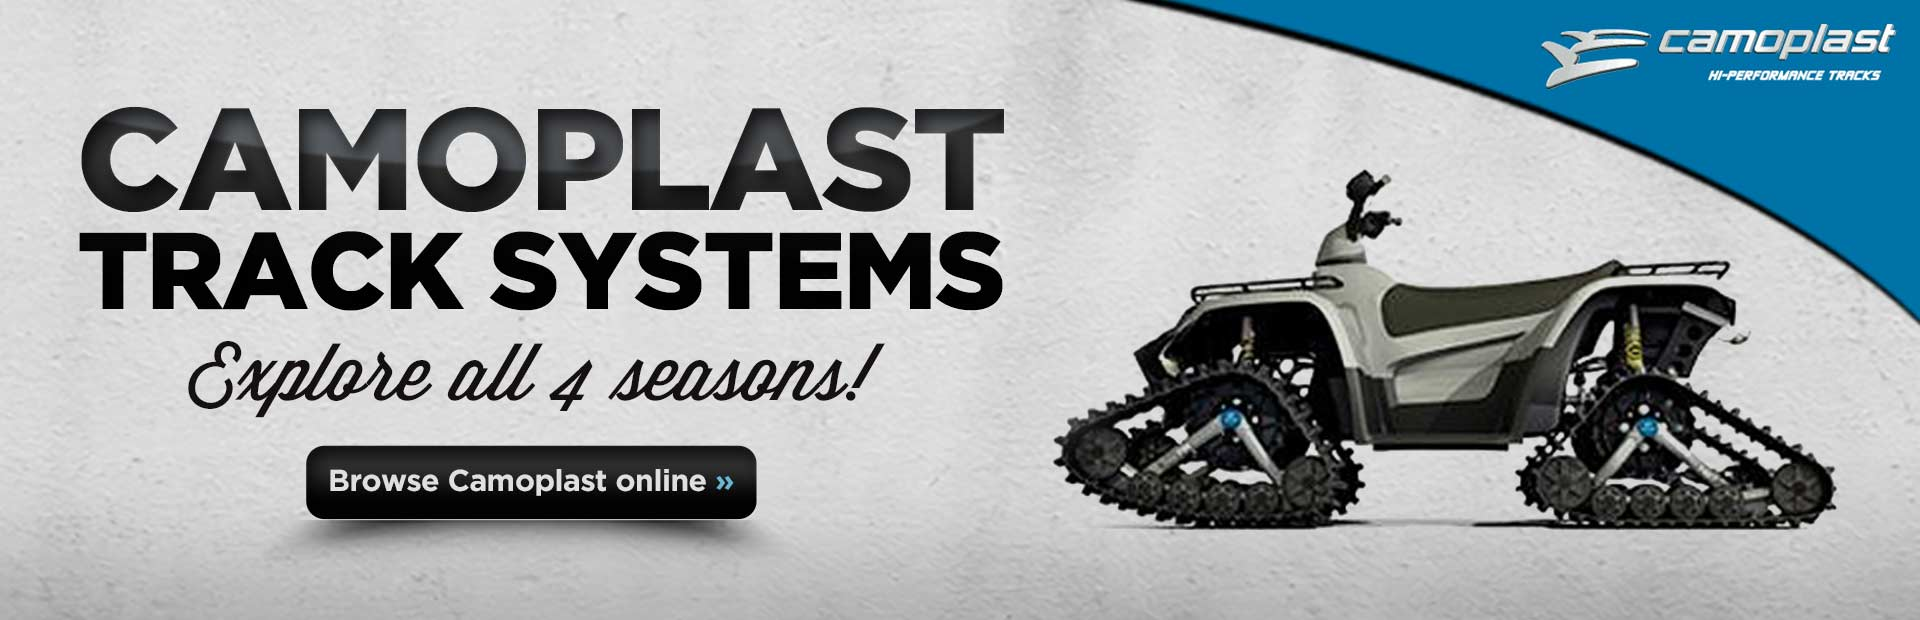 Click here to view Camoplast track systems.